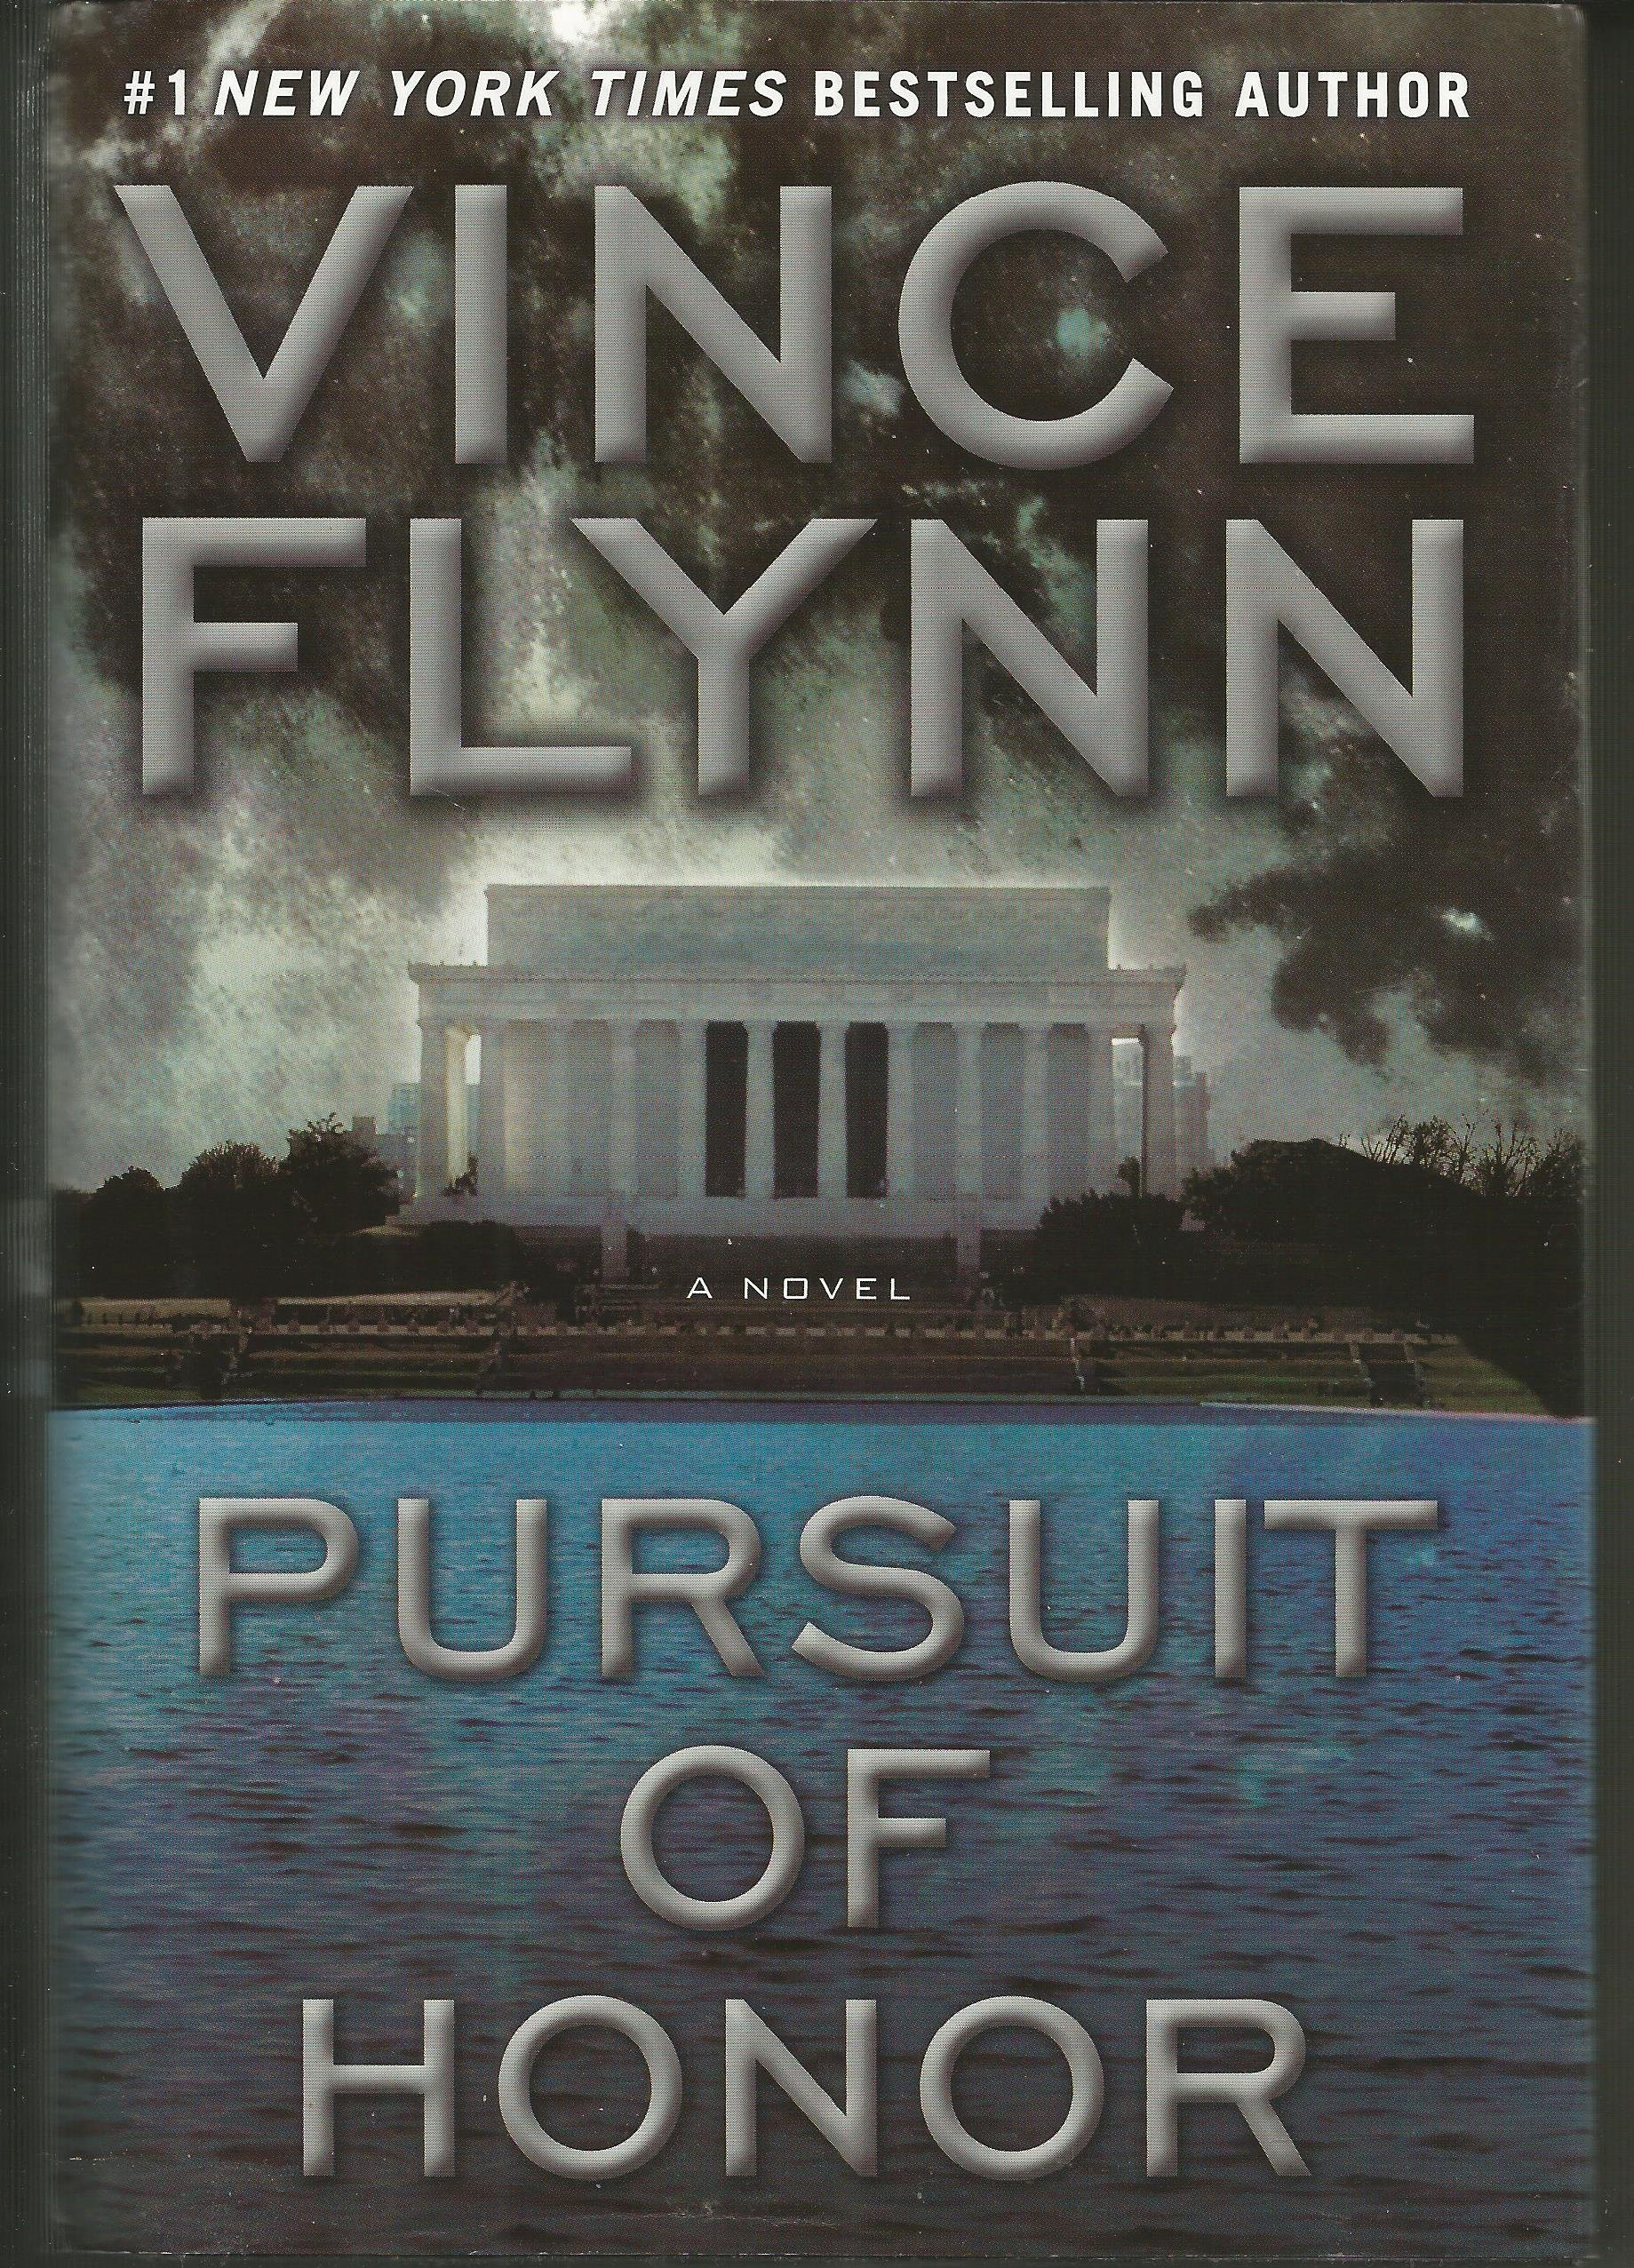 vince flynn novels in chronological order